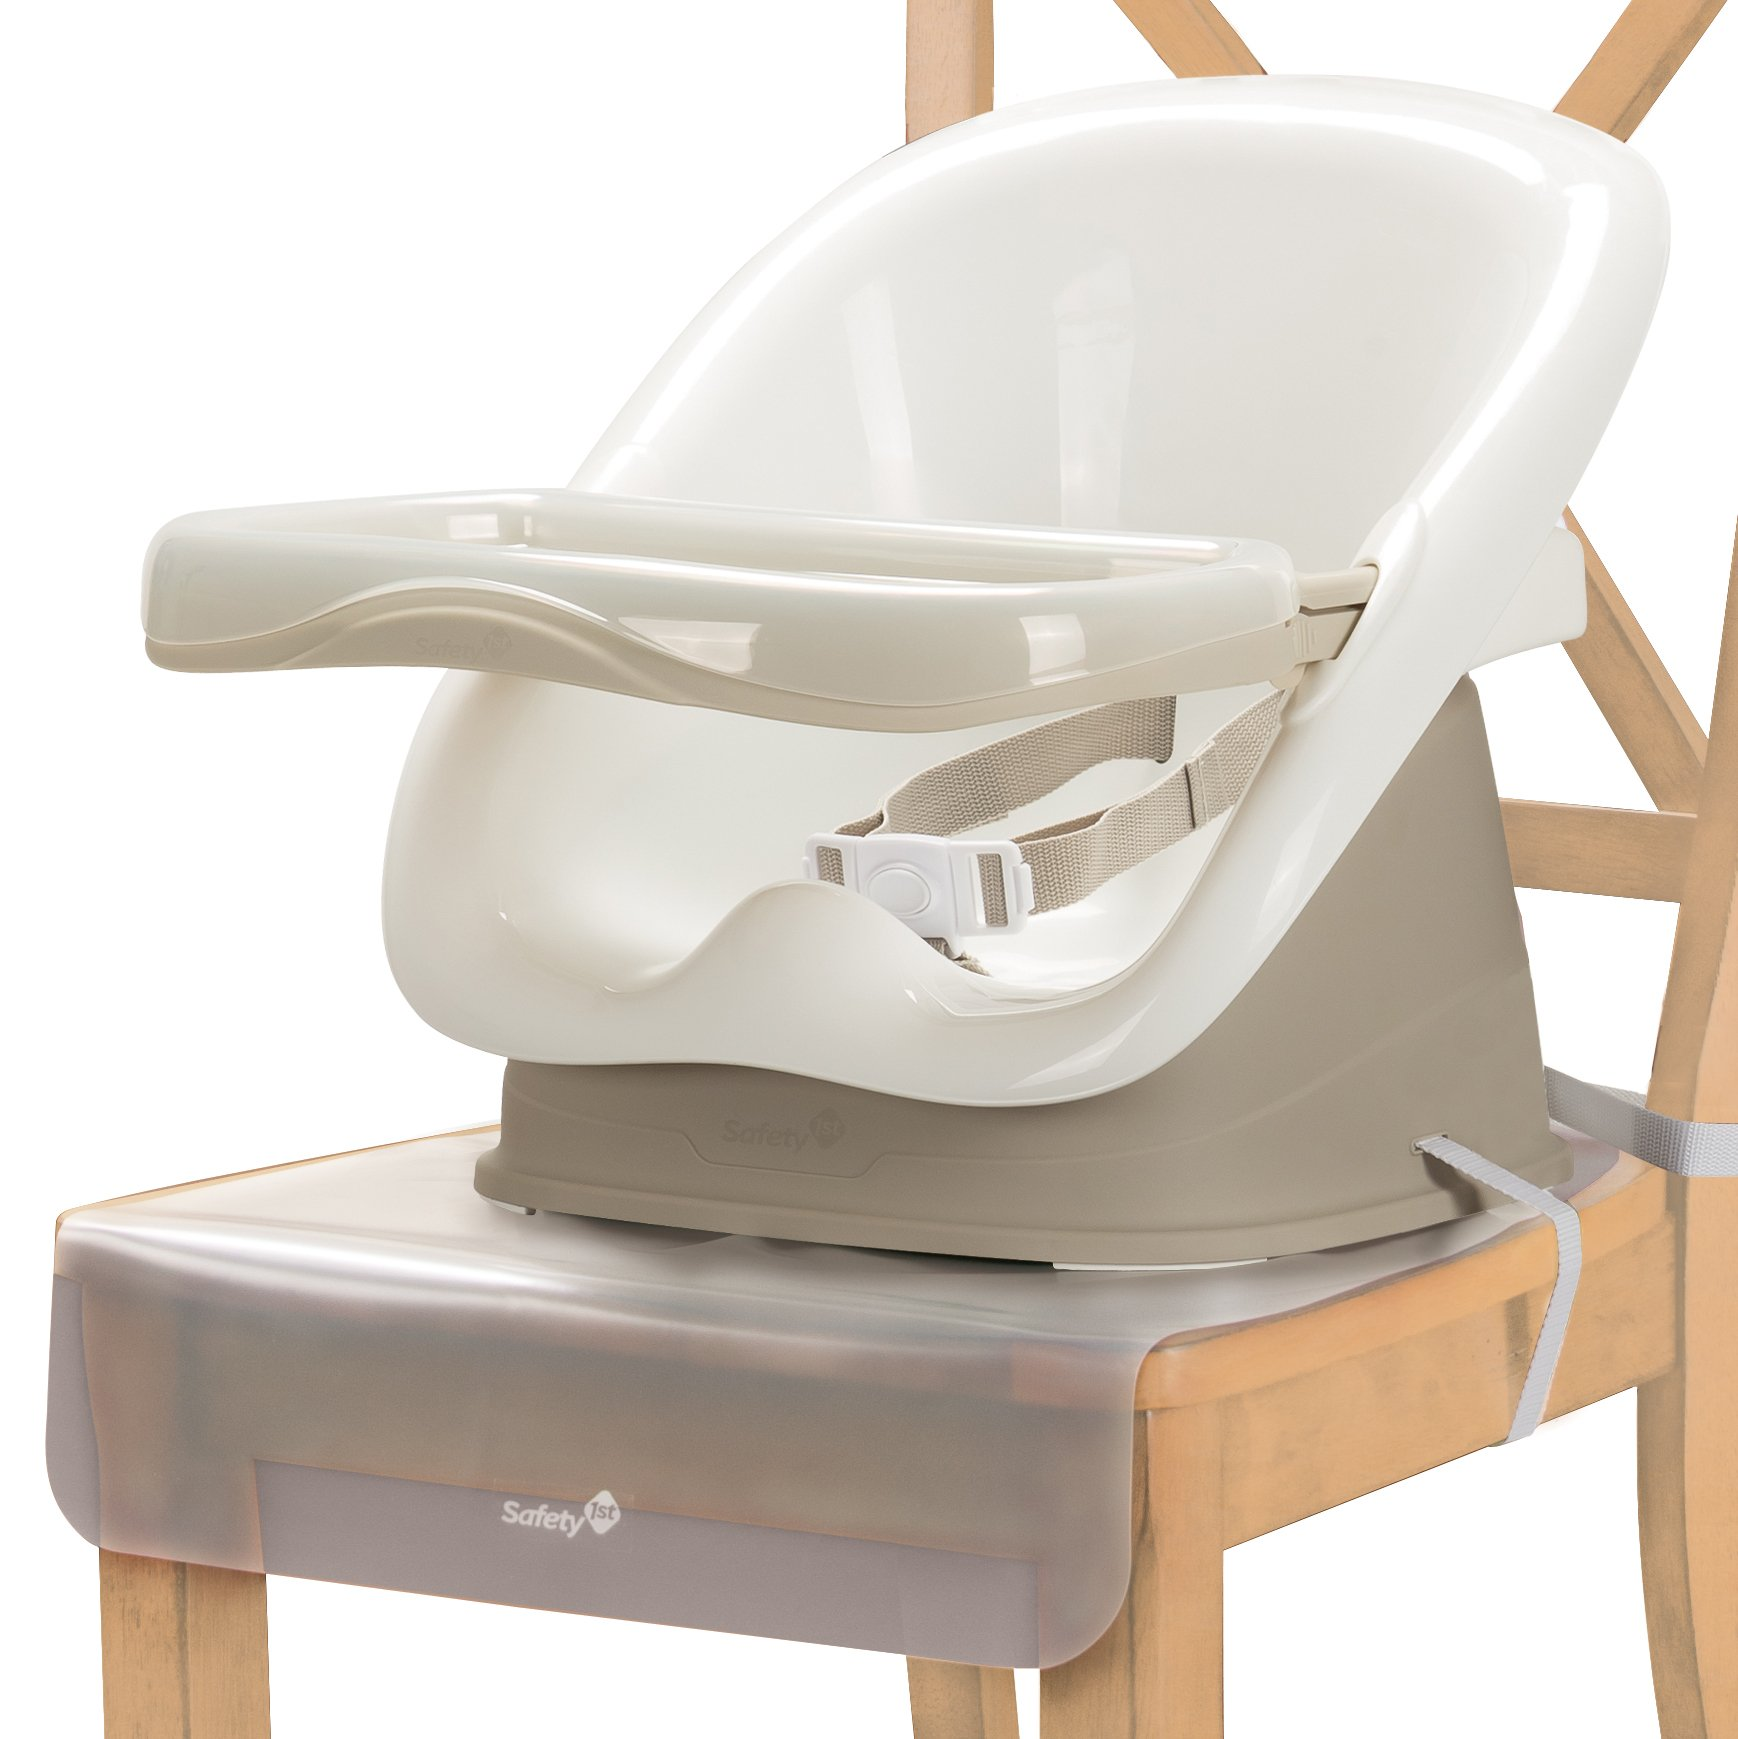 Safety 1st Clean and Comfy Feeding Booster by Safety 1st (Image #1)